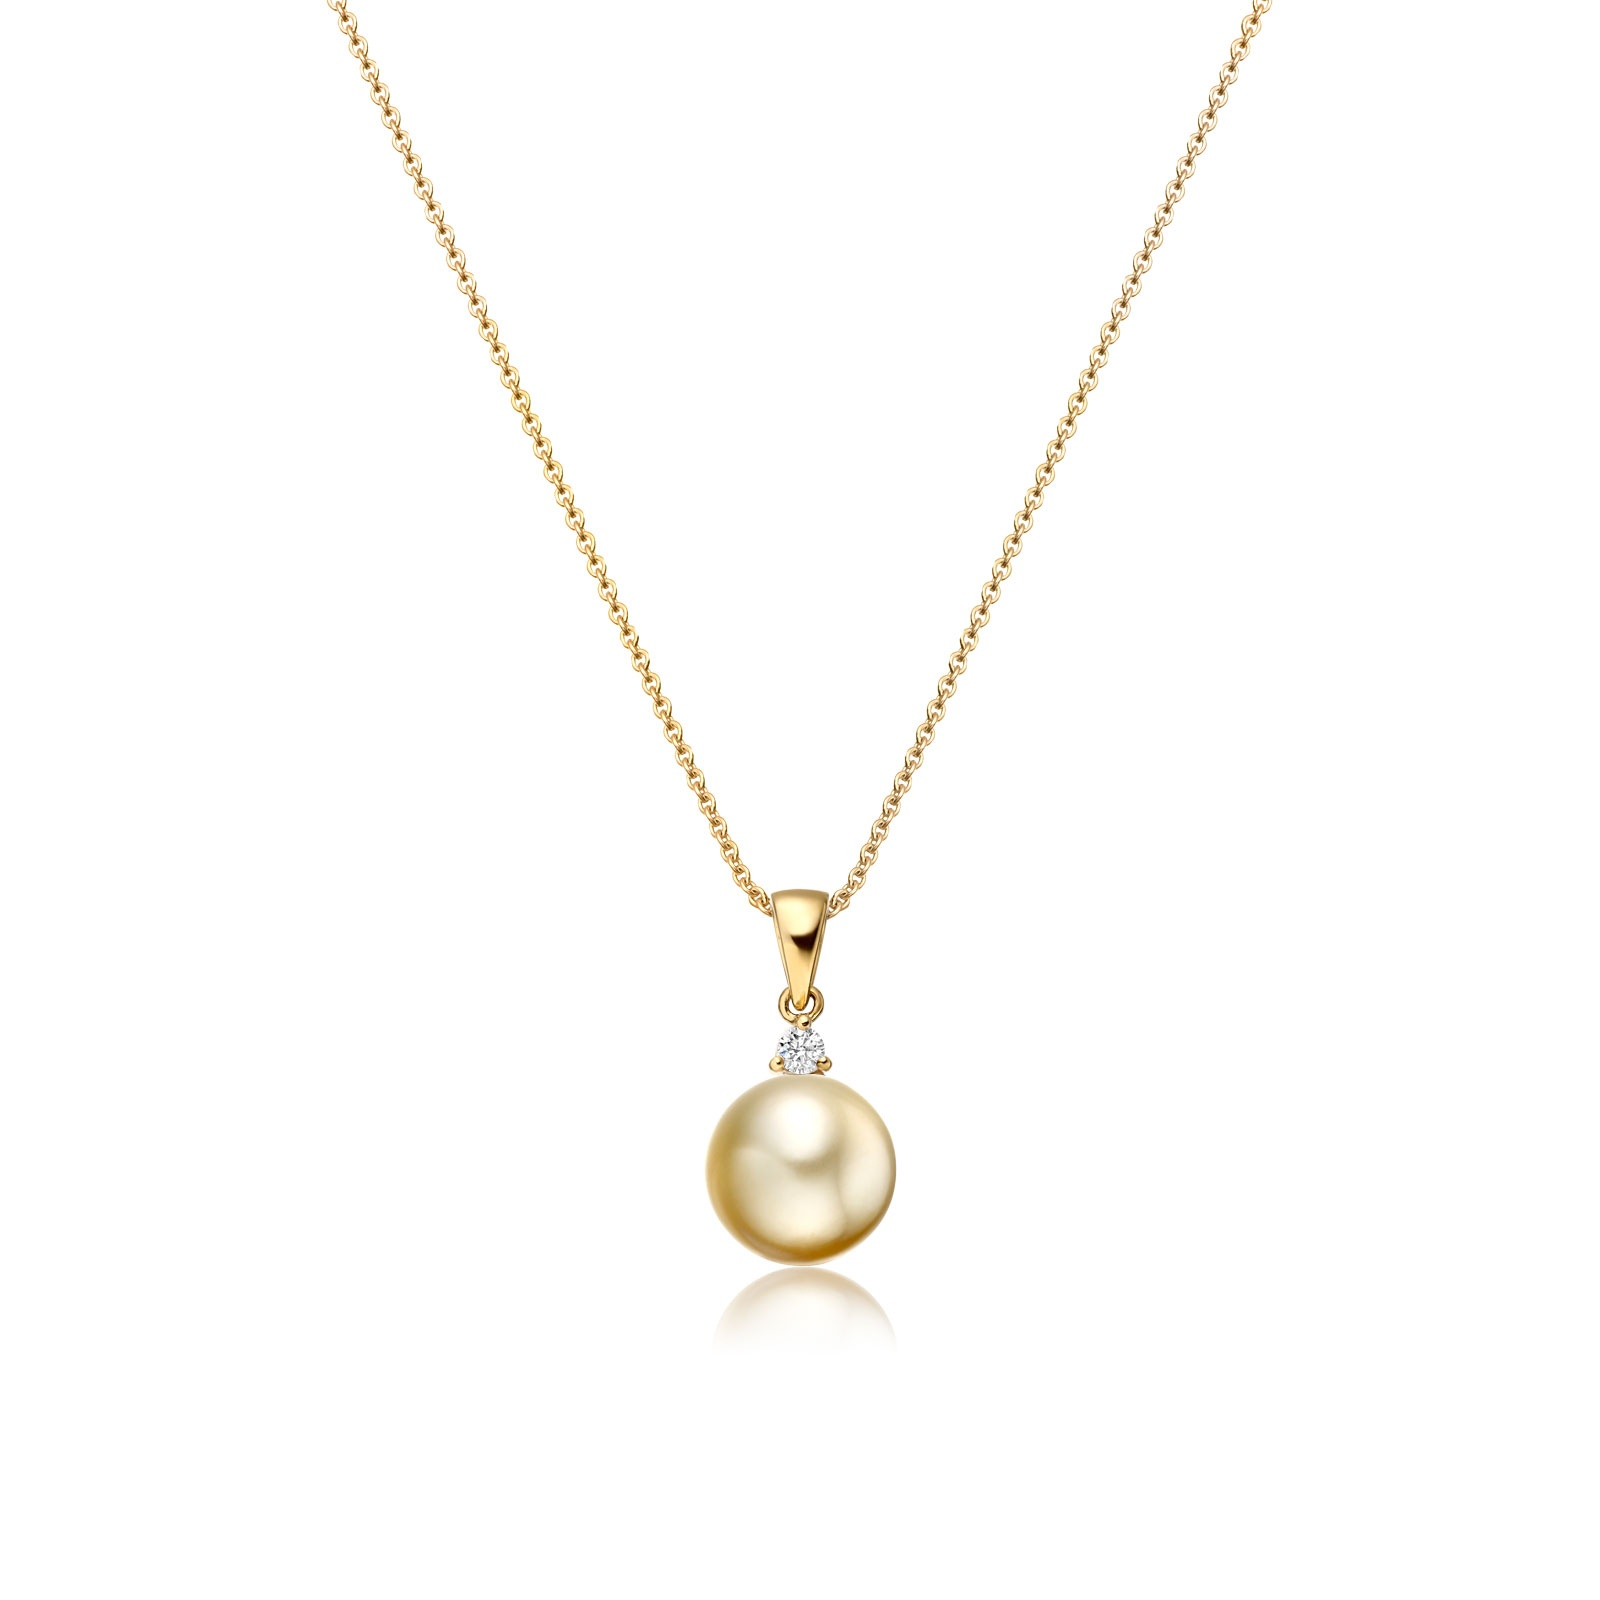 Golden South Sea Pearl and Diamond Pendant-SPGRYG0176-1